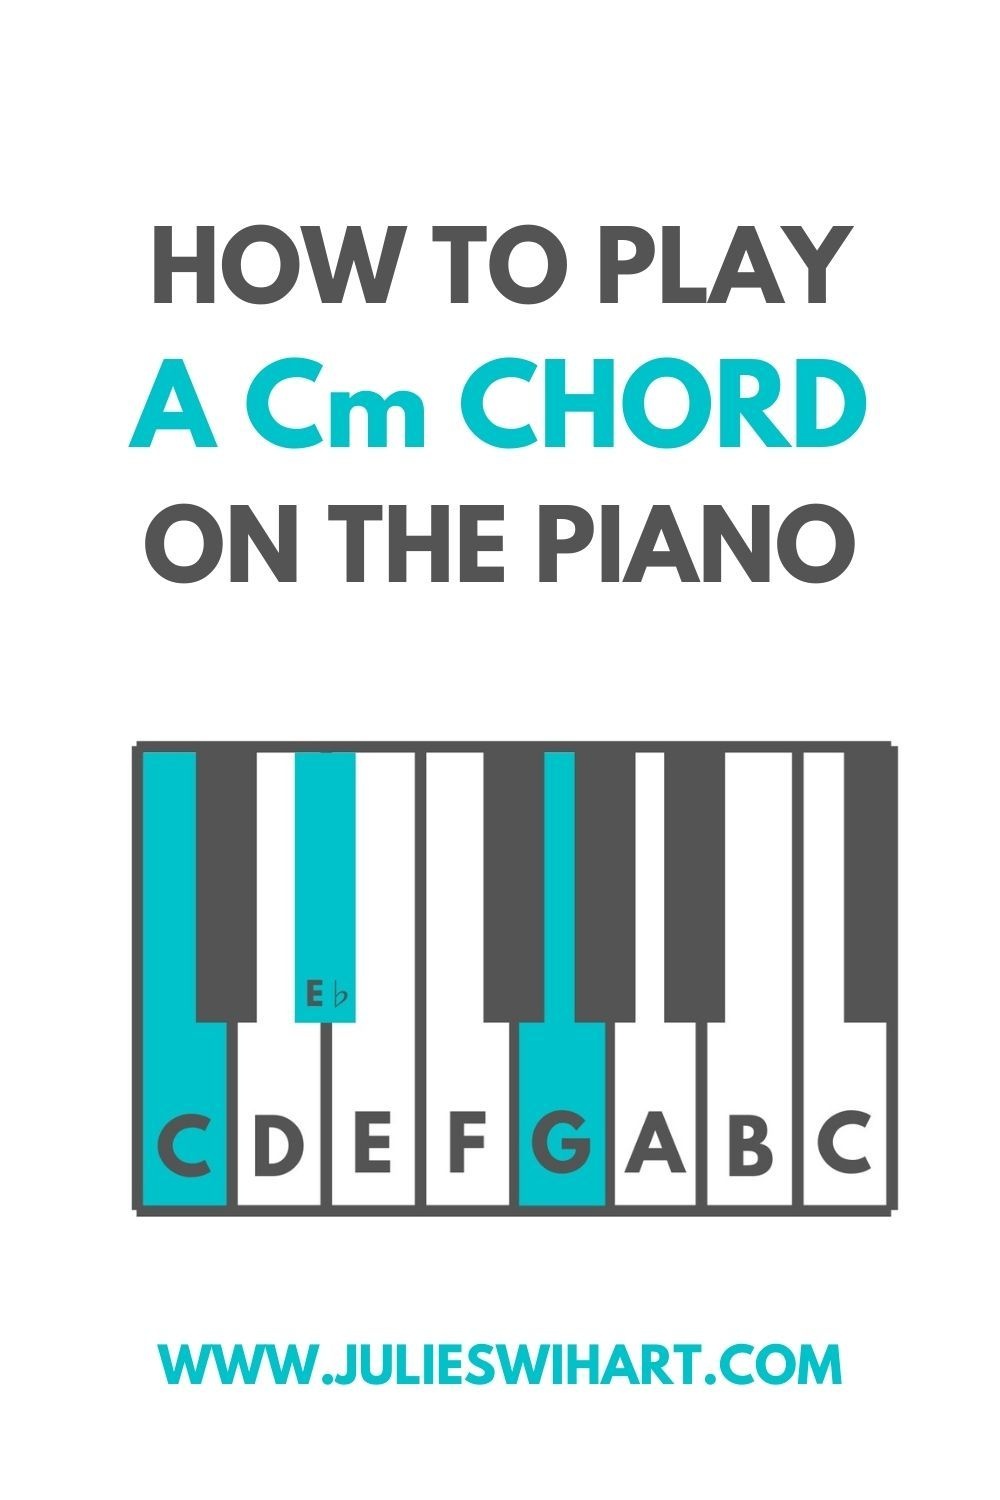 How to Play a Cm Chord on the Piano   Learn piano chords, Learn ...